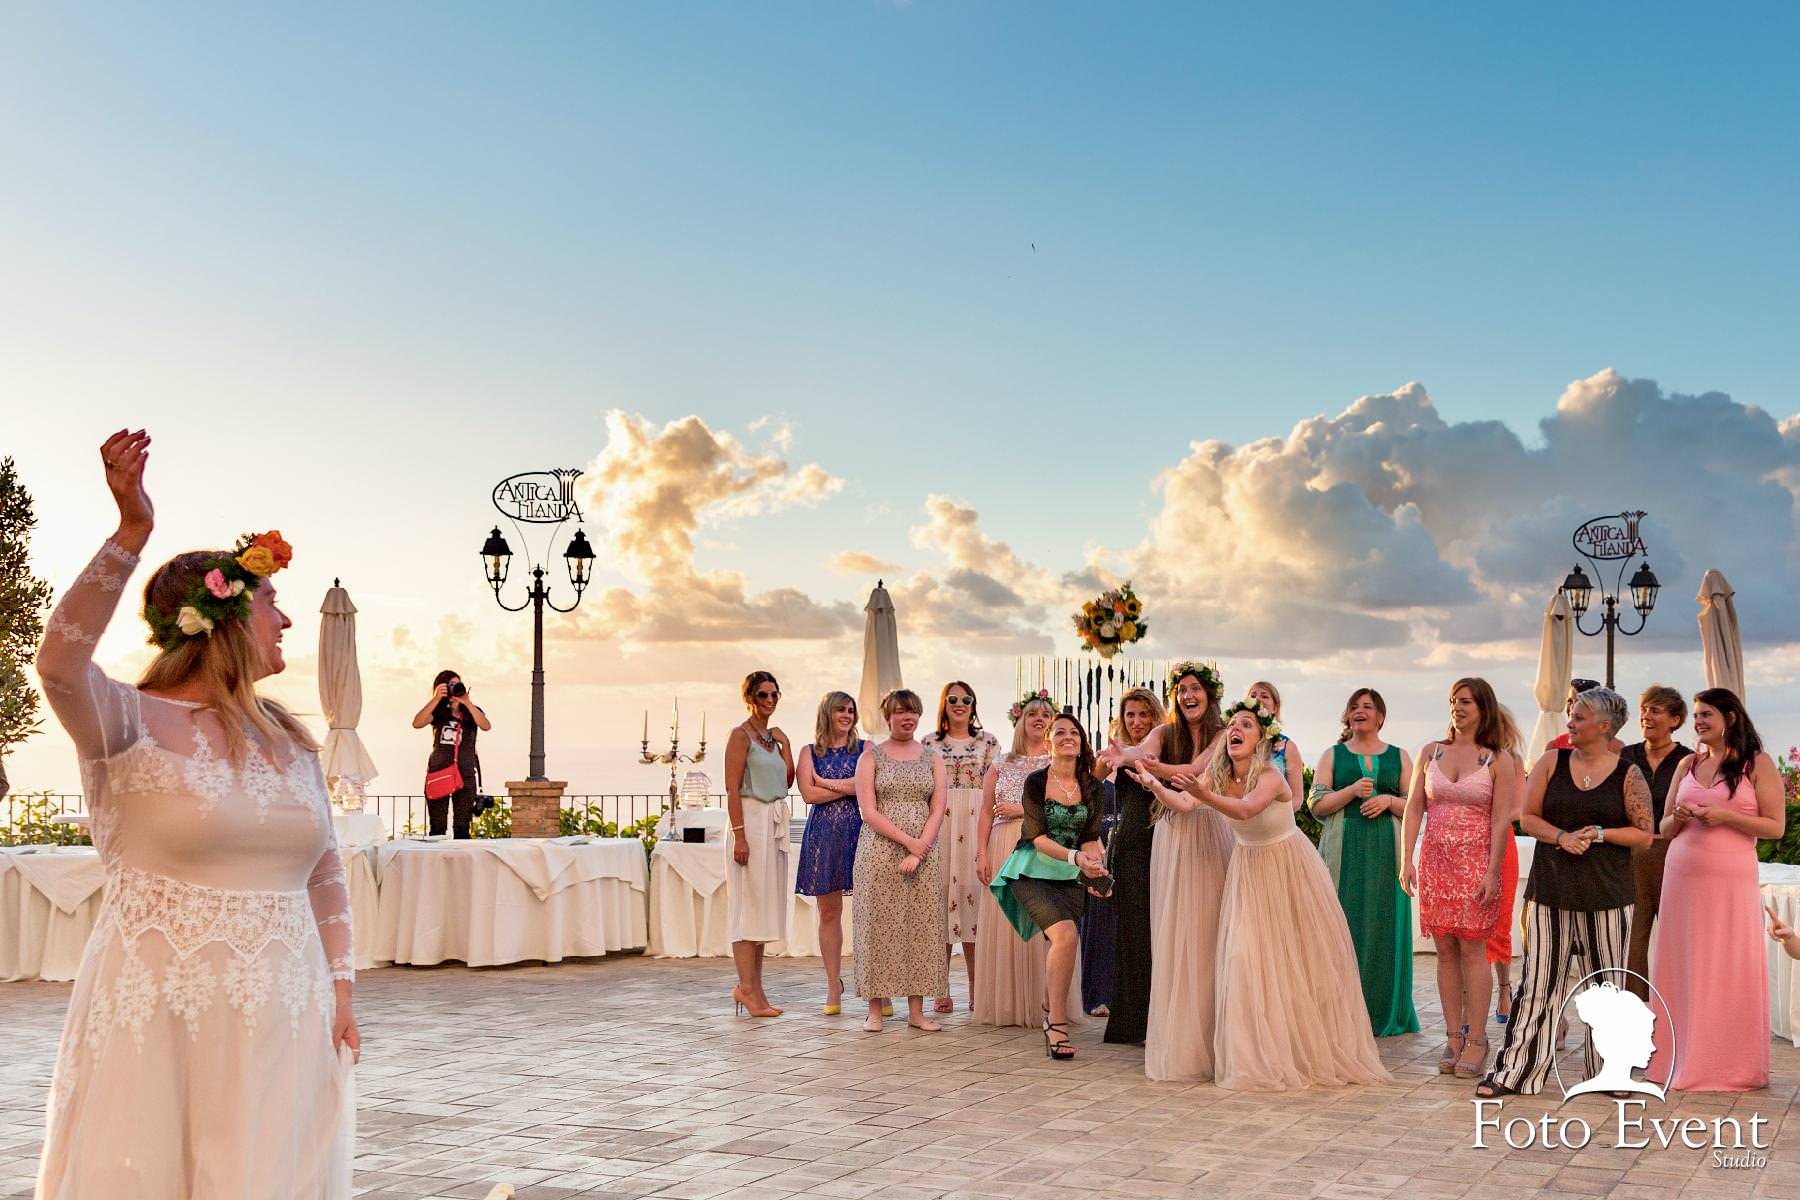 Destination wedding sicily Elisa Bellanti Foto Event Studio 249